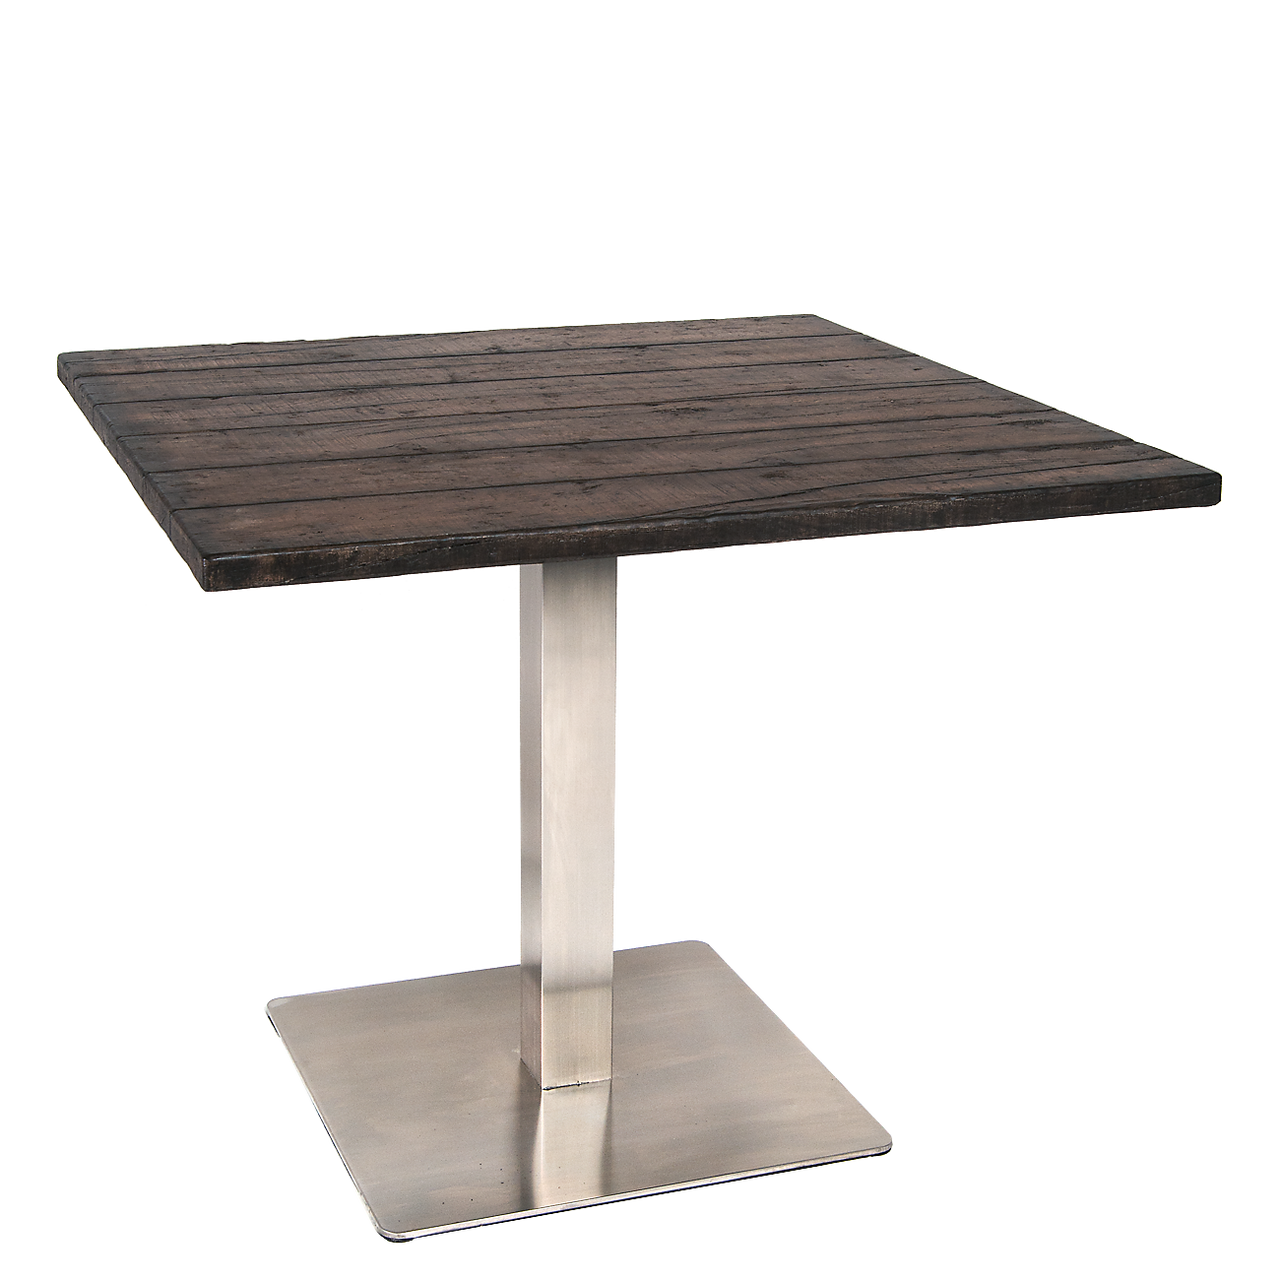 Faux Wood Outdoor Dining Table Concrete Top Outdoor Table : OTC303010804146135618712801280 from www.seatsandstools.com size 1280 x 1280 png 787kB